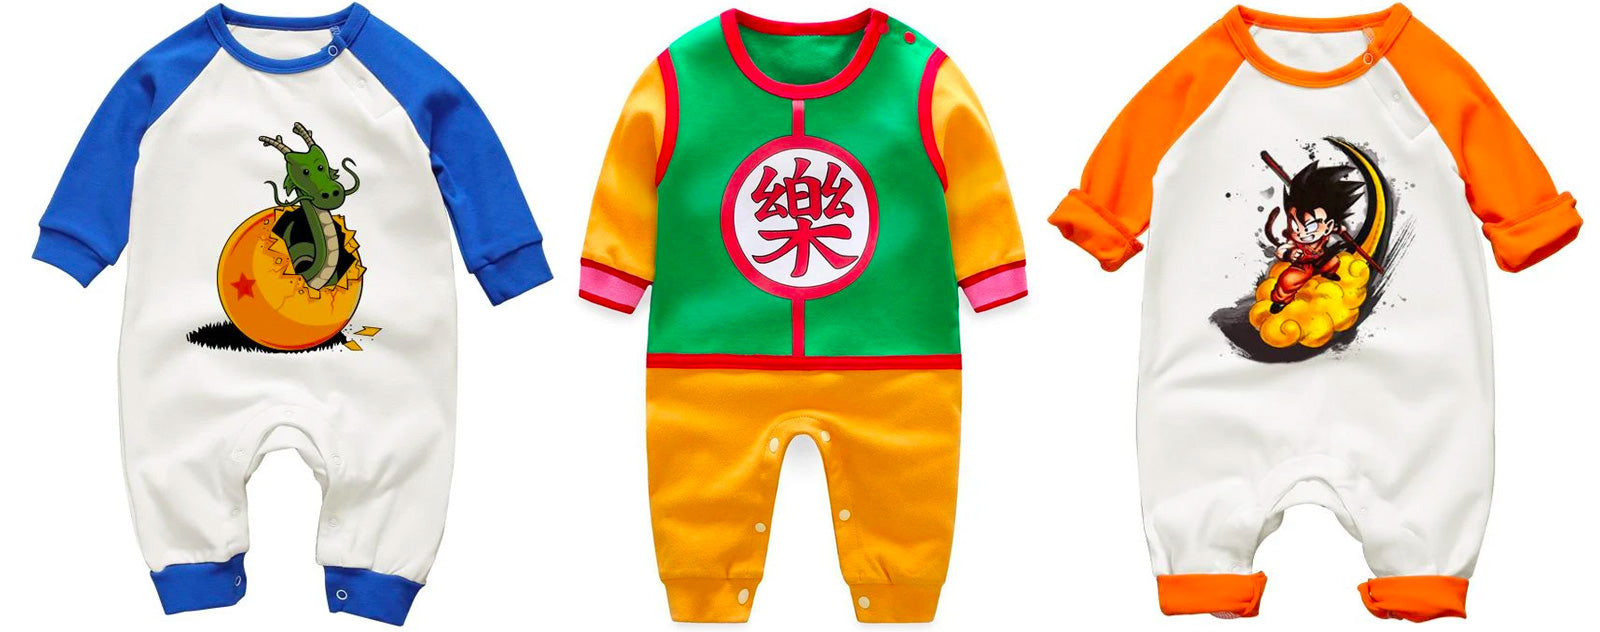 Vêtements Bébé Dragon Ball Z